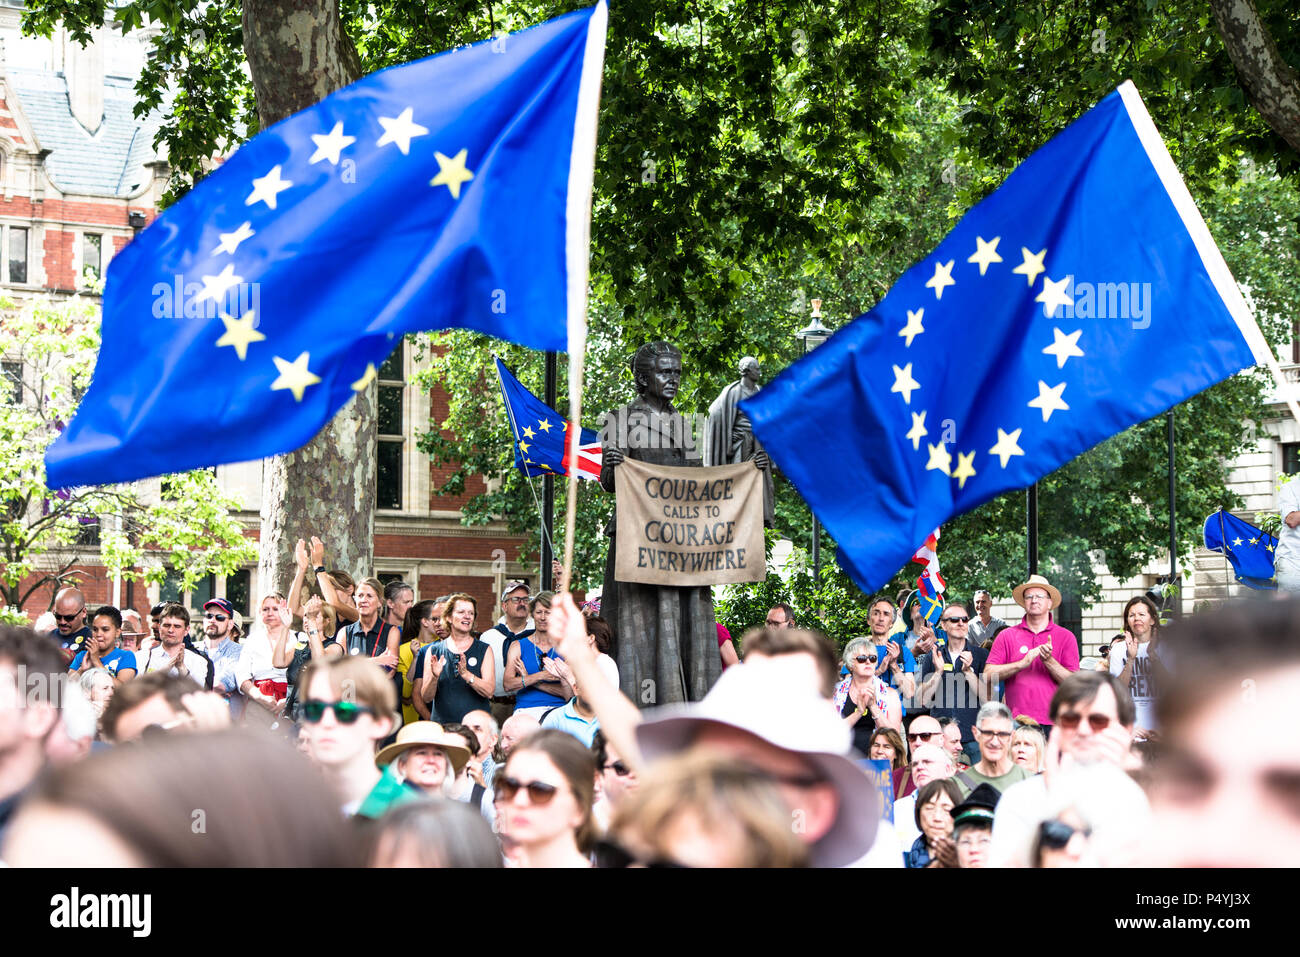 London, UK. 23rd June, 2018. The statue of Millicent Fawcett between European Union Flags. A coalition of pro-EU groups organized a march to parliament to demand a People's Vote on Brexit deal and whatever the government proposes on its future relationship with the EU. Credit: SOPA Images Limited/Alamy Live News - Stock Image